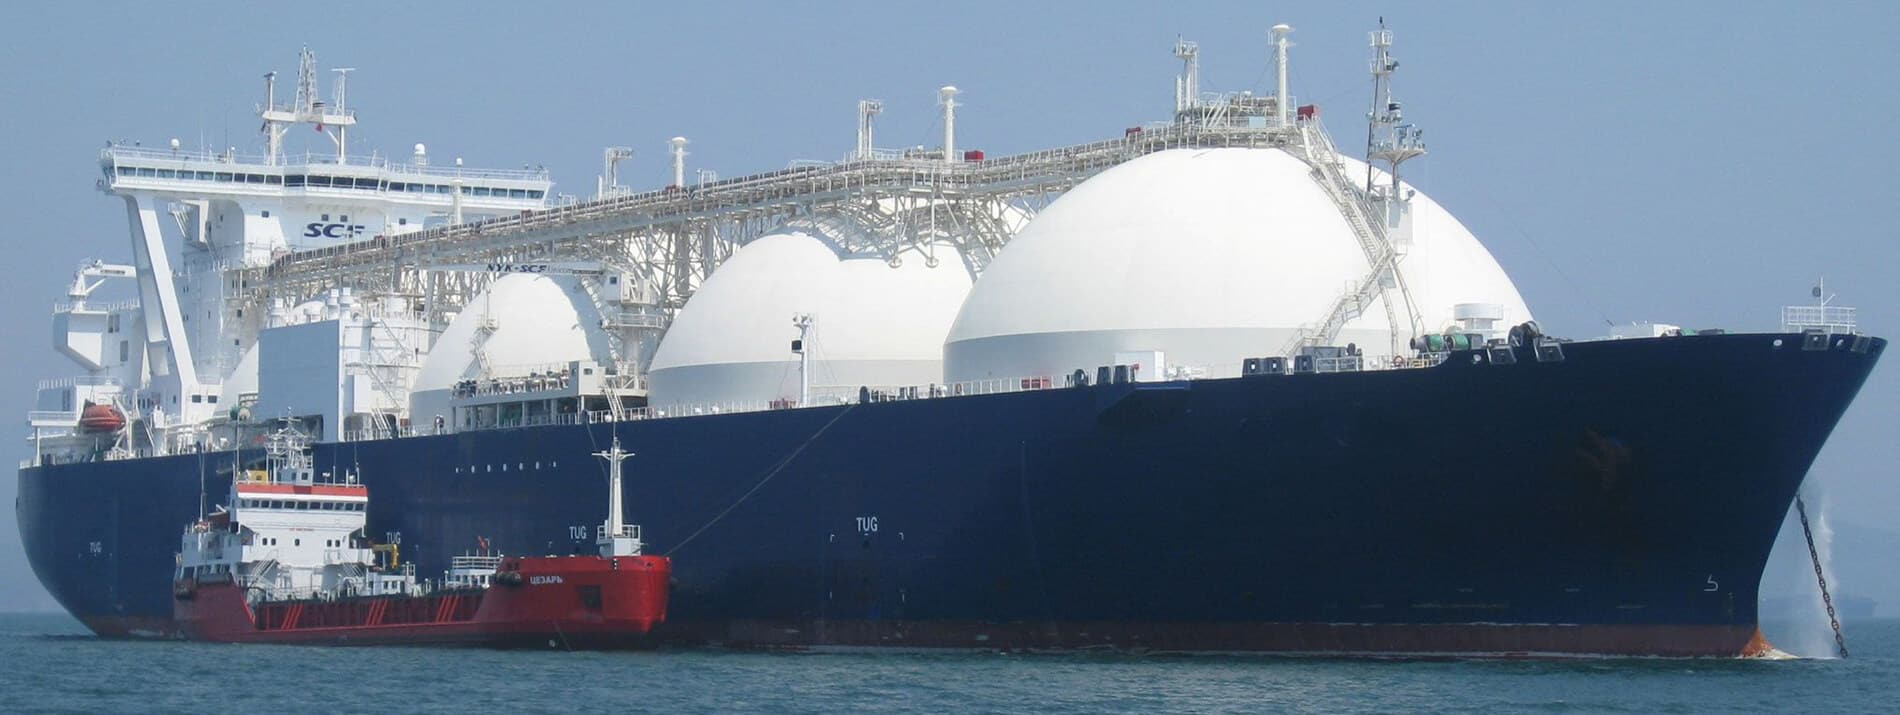 Another large Liquid Natural Gas (LNG) Carrier with adjacent red tug and a ship loan